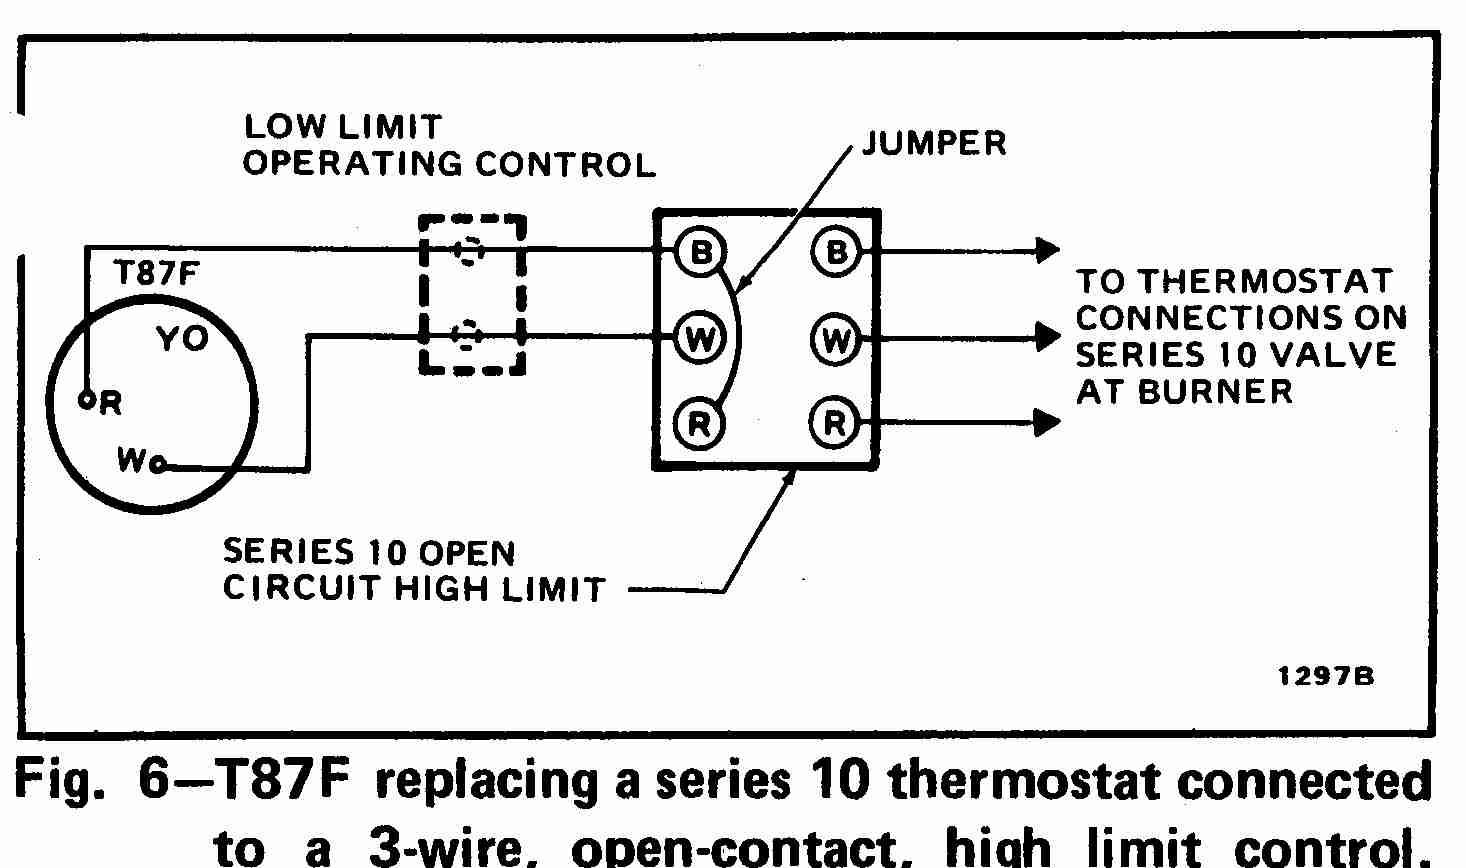 TT_T87F_0002_3WHL_DJF room thermostat wiring diagrams for hvac systems thermostat wiring diagram at readyjetset.co